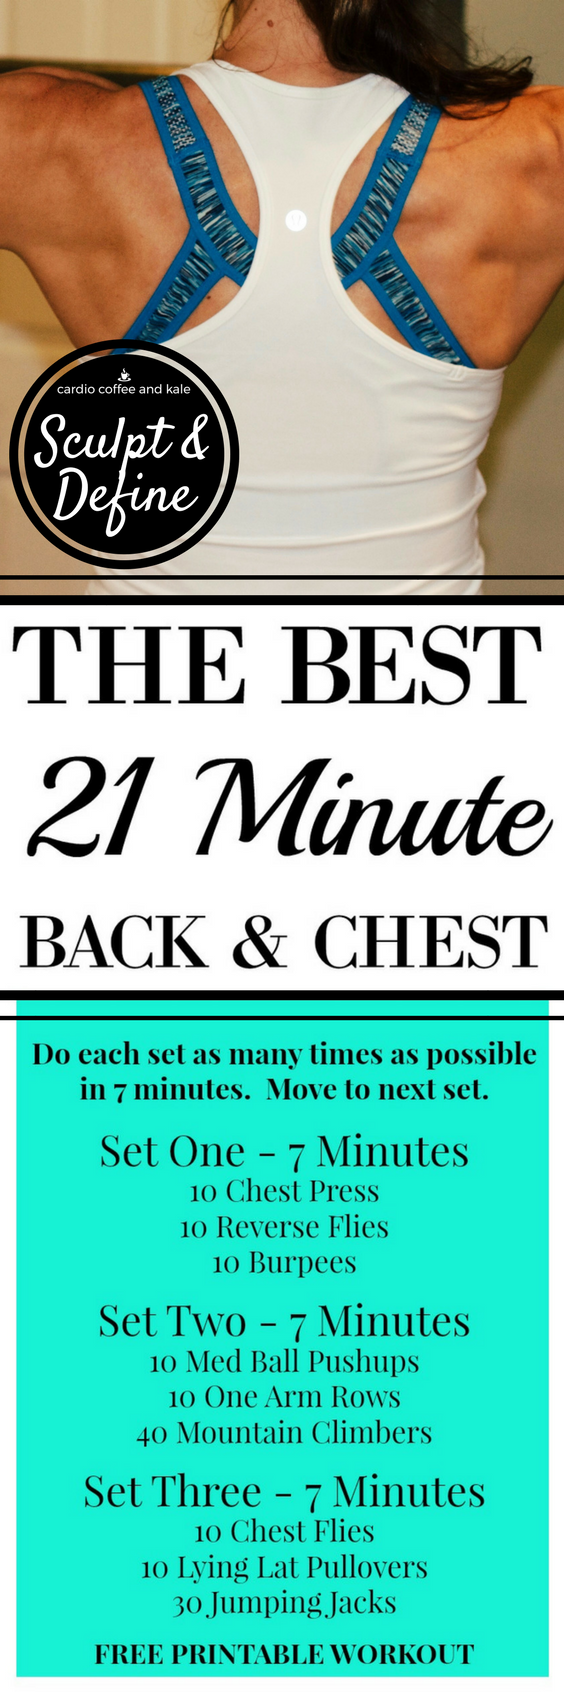 Short on time? Looking to get some definition in your back? This workout is 21 minutes and is a perfect strength andfat burning workout! www.cardiocoffeeandkale.com